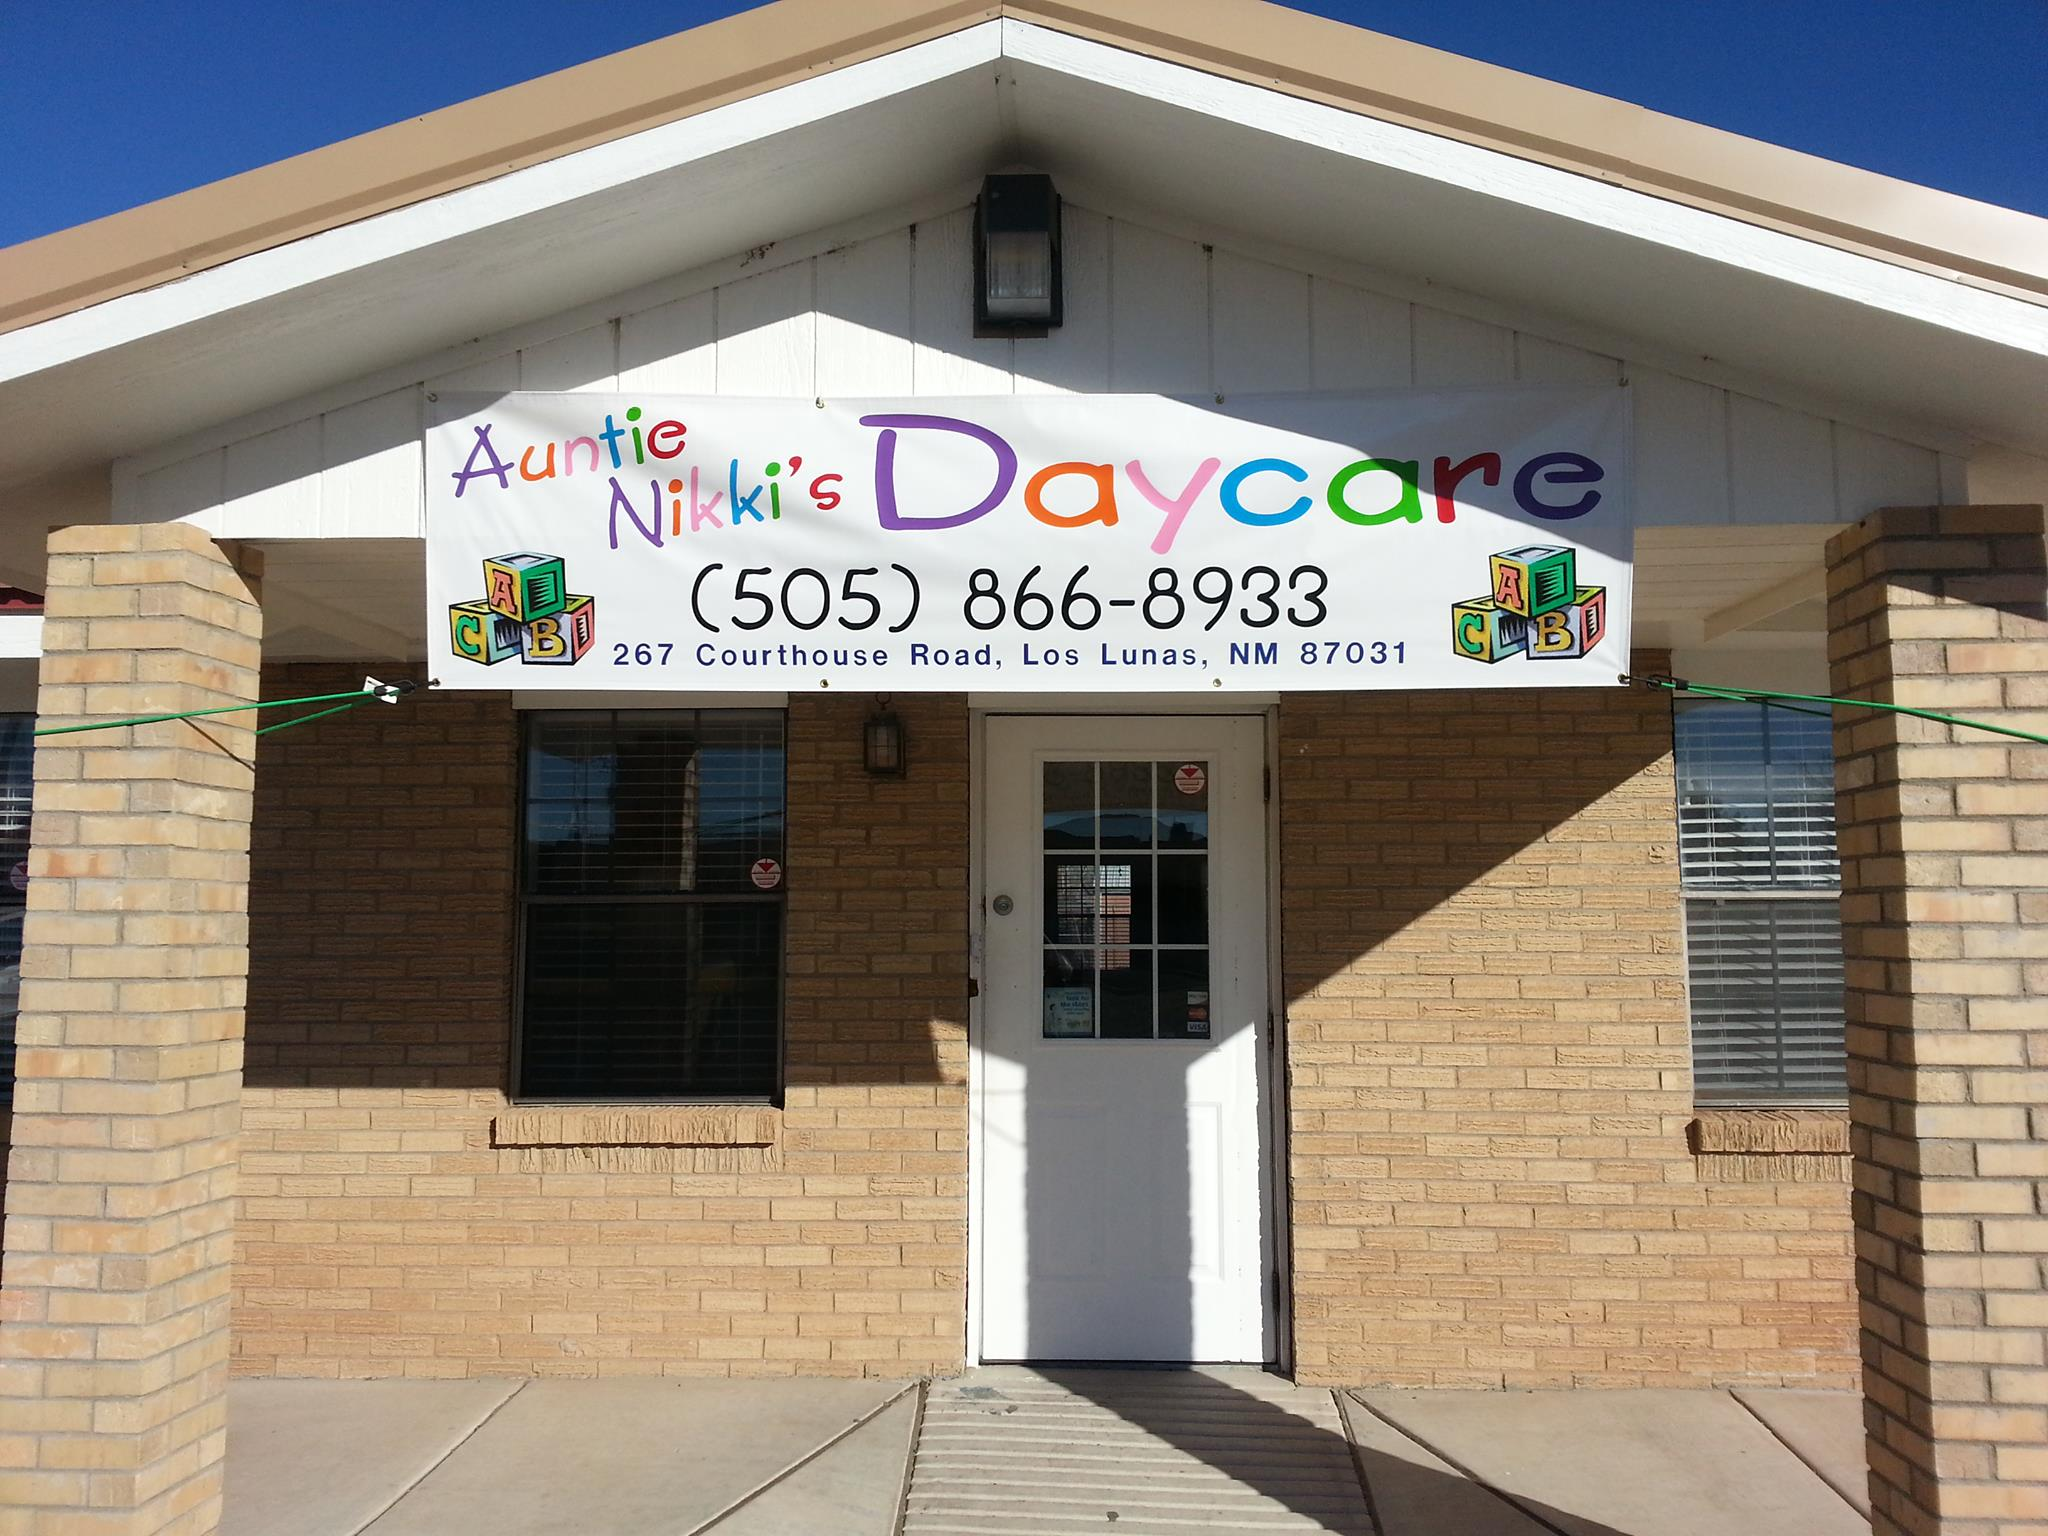 Auntie Nikki's Day Care LLC